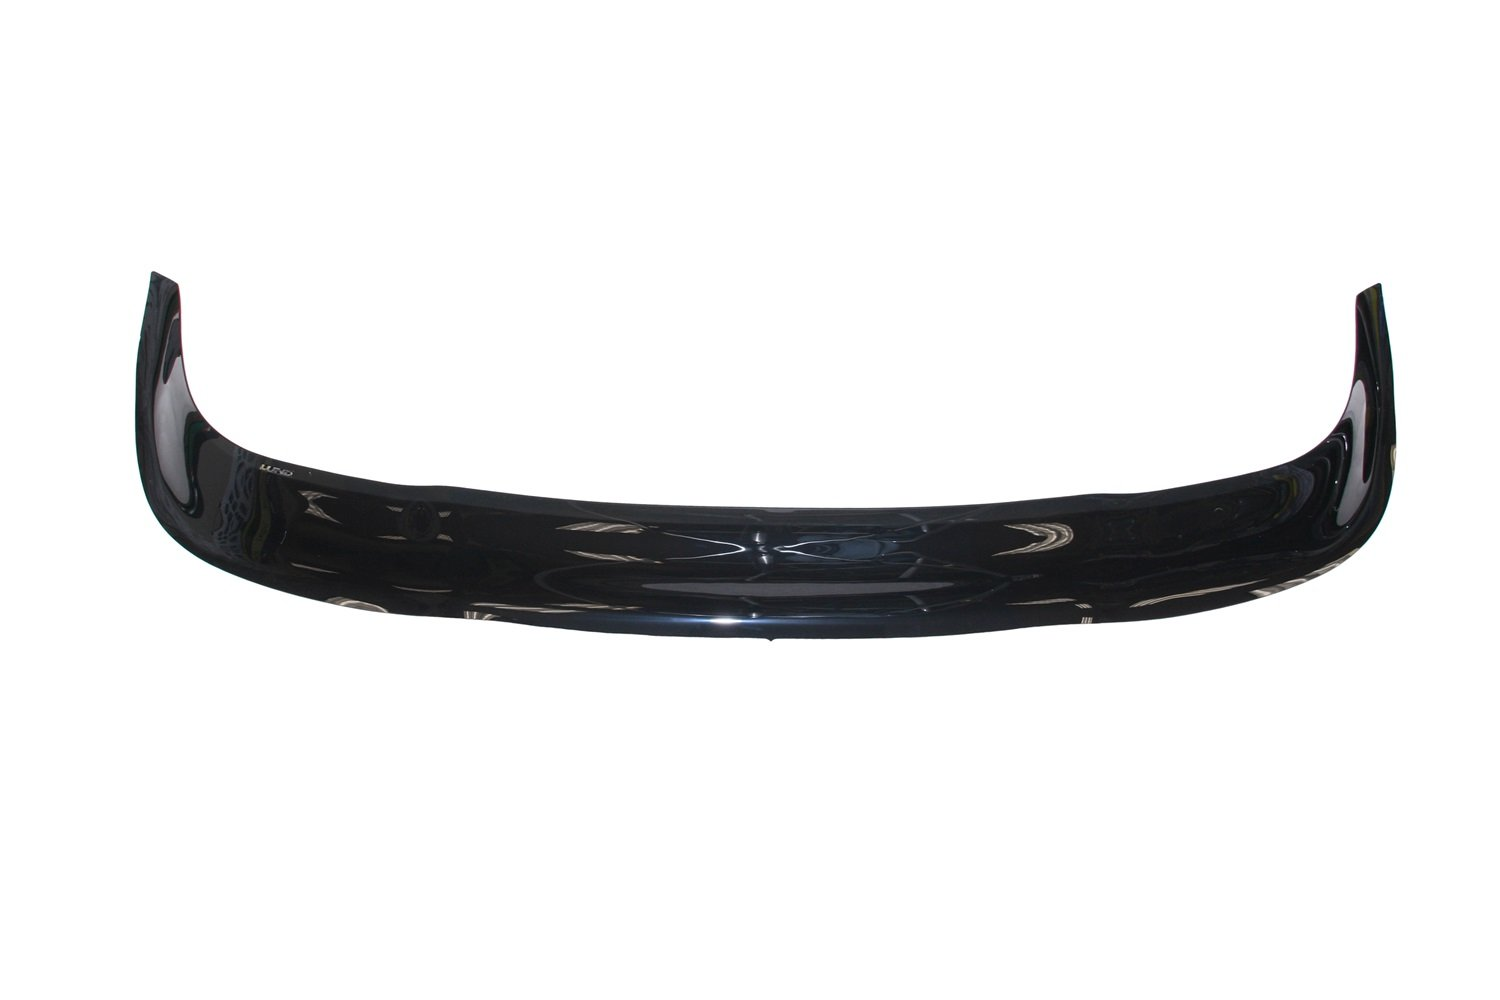 Lund 25529 Shadow Wiper Cowl Smoke Air Deflector for 2002-2008 Dodge Ram 1500, 2500, 3500 (Excludes SRT V-10 Hood)